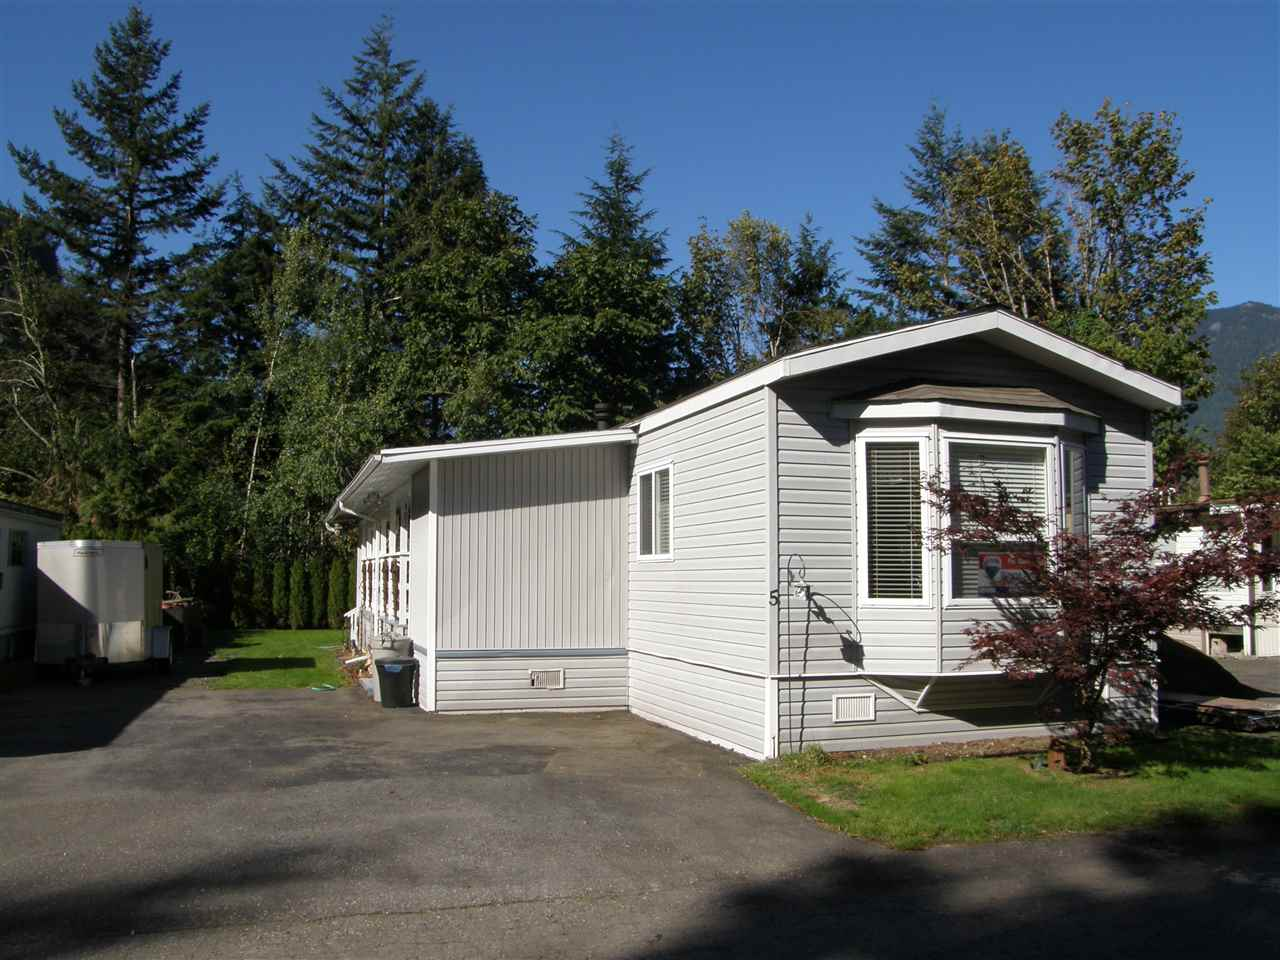 Main Photo: 5 62010 FLOOD HOPE Road in Hope: Hope Center Manufactured Home for sale : MLS®# R2078381